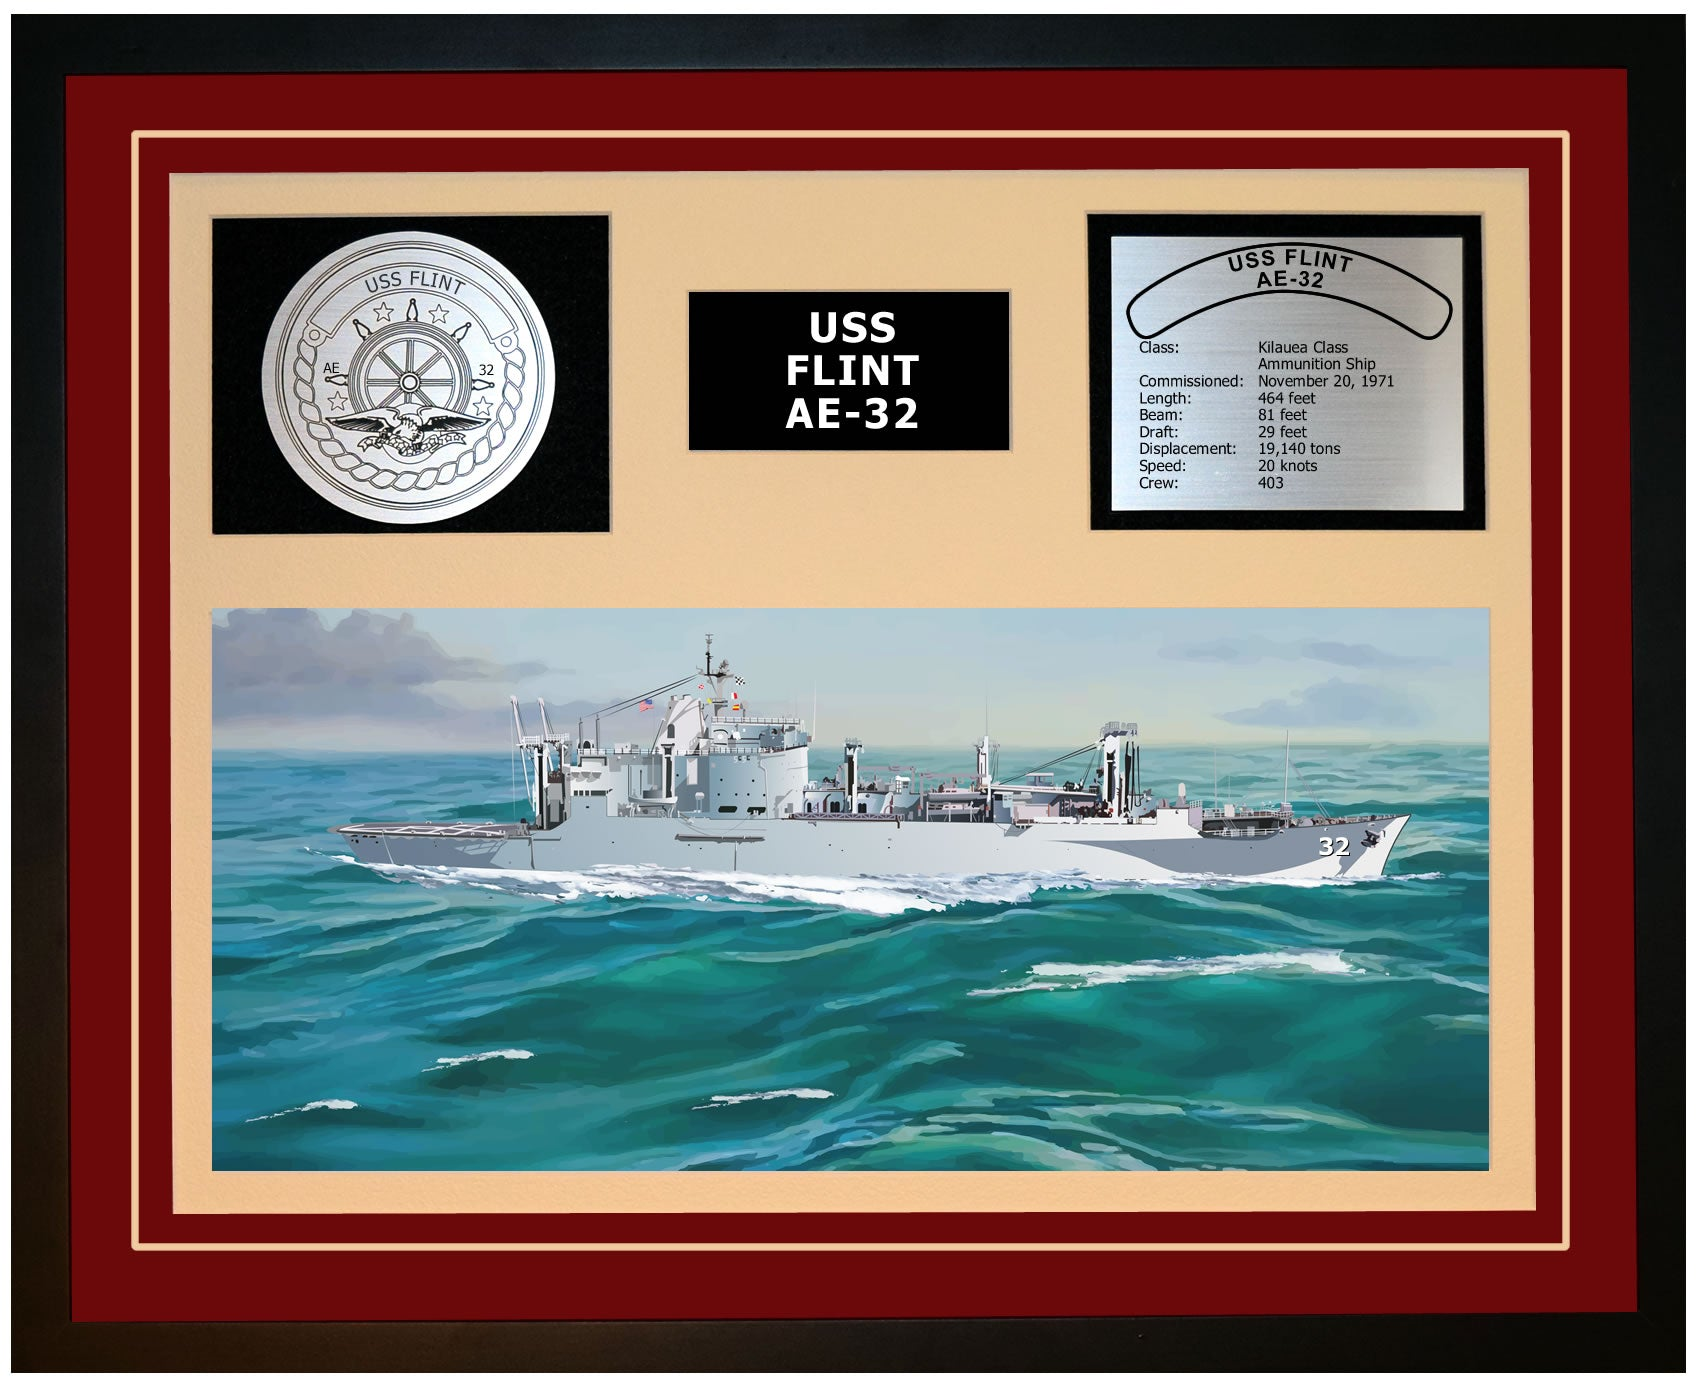 USS FLINT AE-32 Framed Navy Ship Display Burgundy